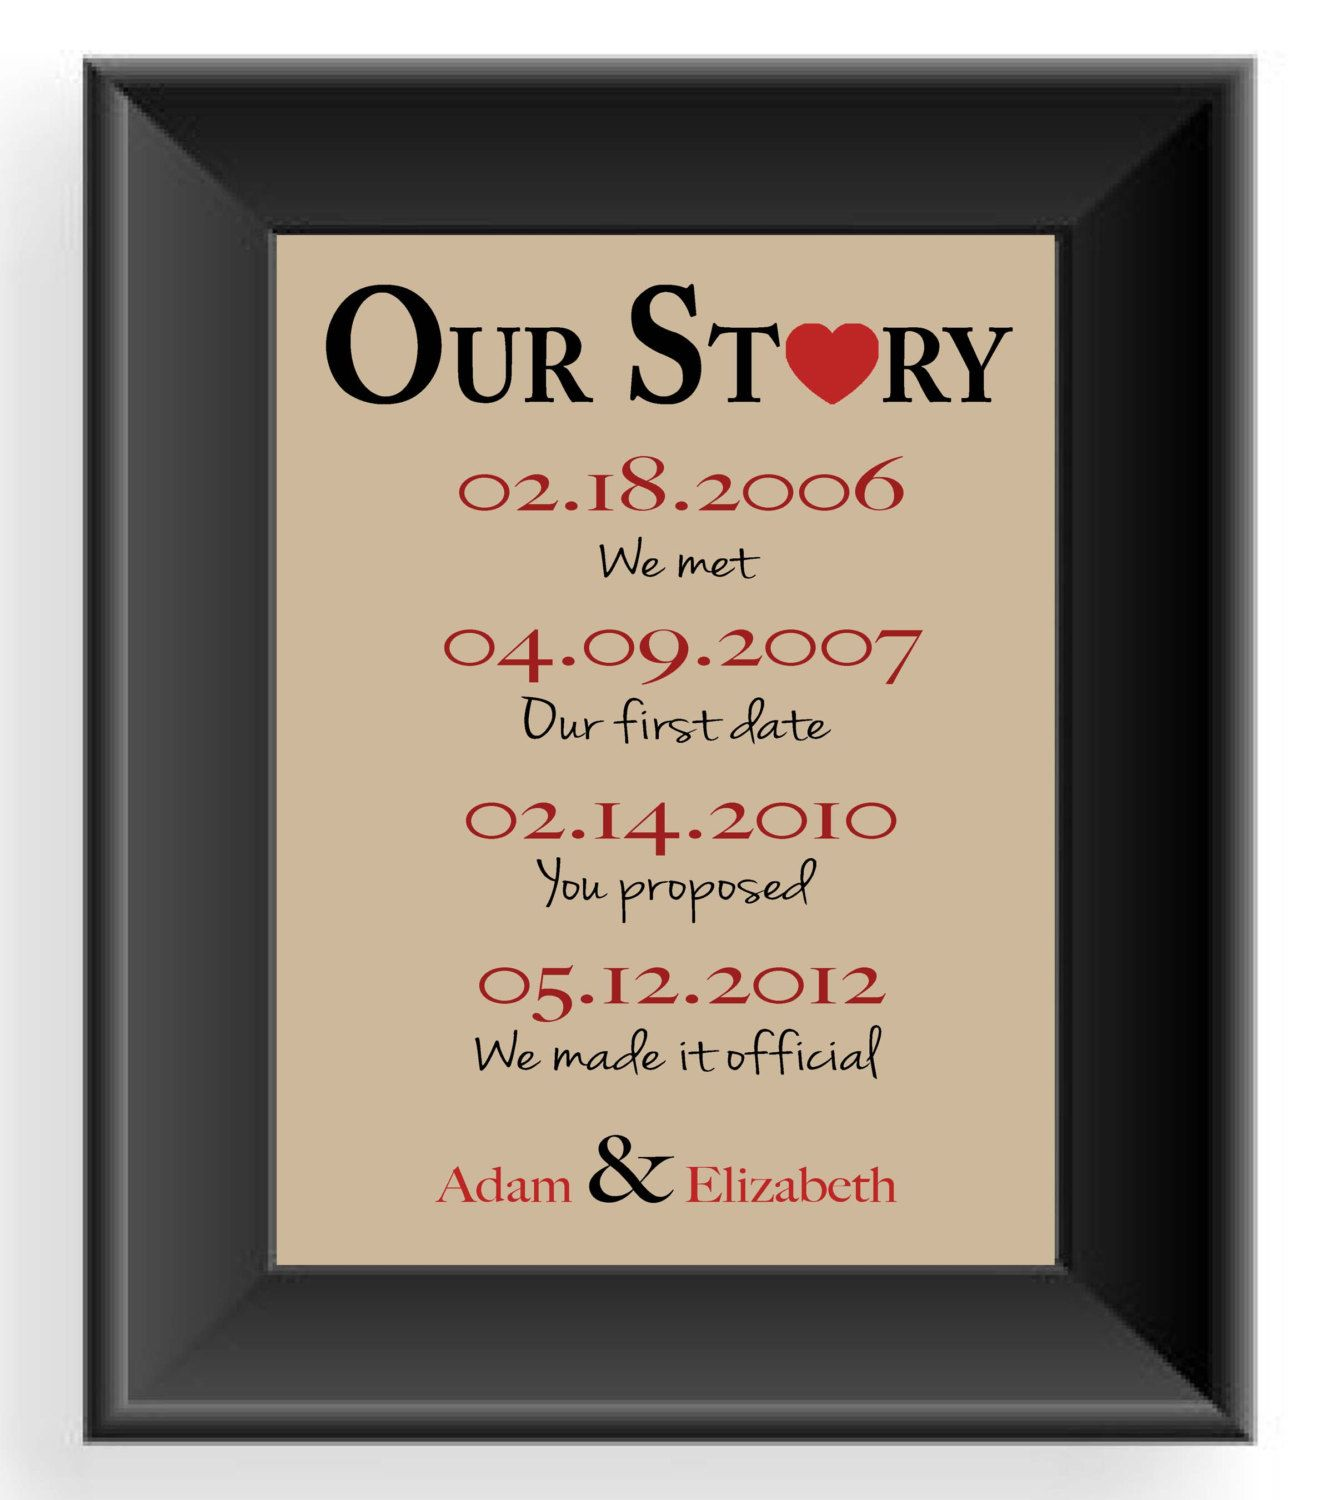 Wedding Anniversary Gifts For Husband Ideas: Valentine's Day Gift -Important Dates -Wedding Gift For